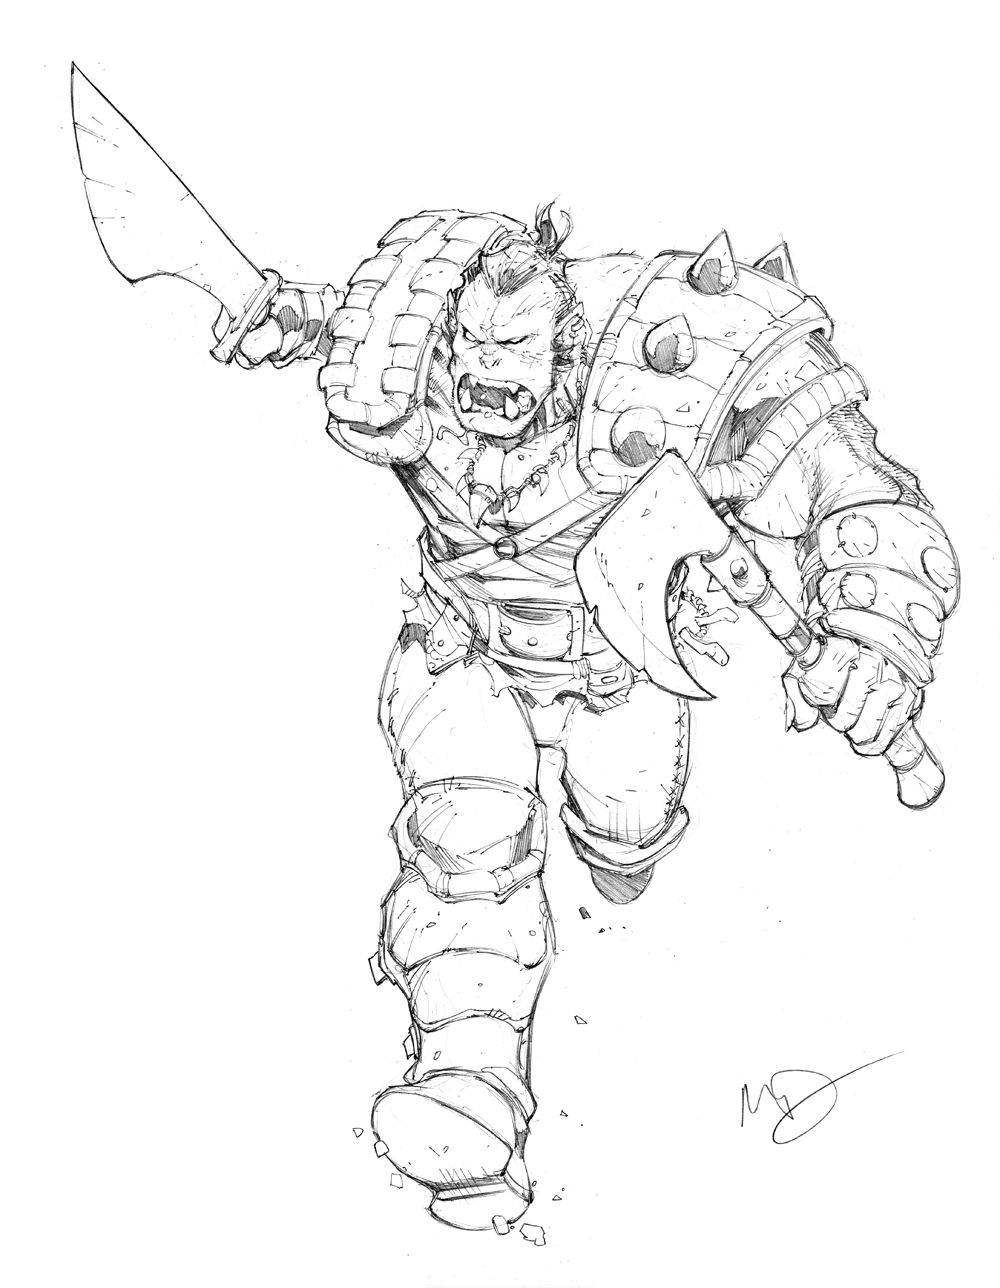 Drawn orc cartoon (Max 31 Max DeviantArt Max